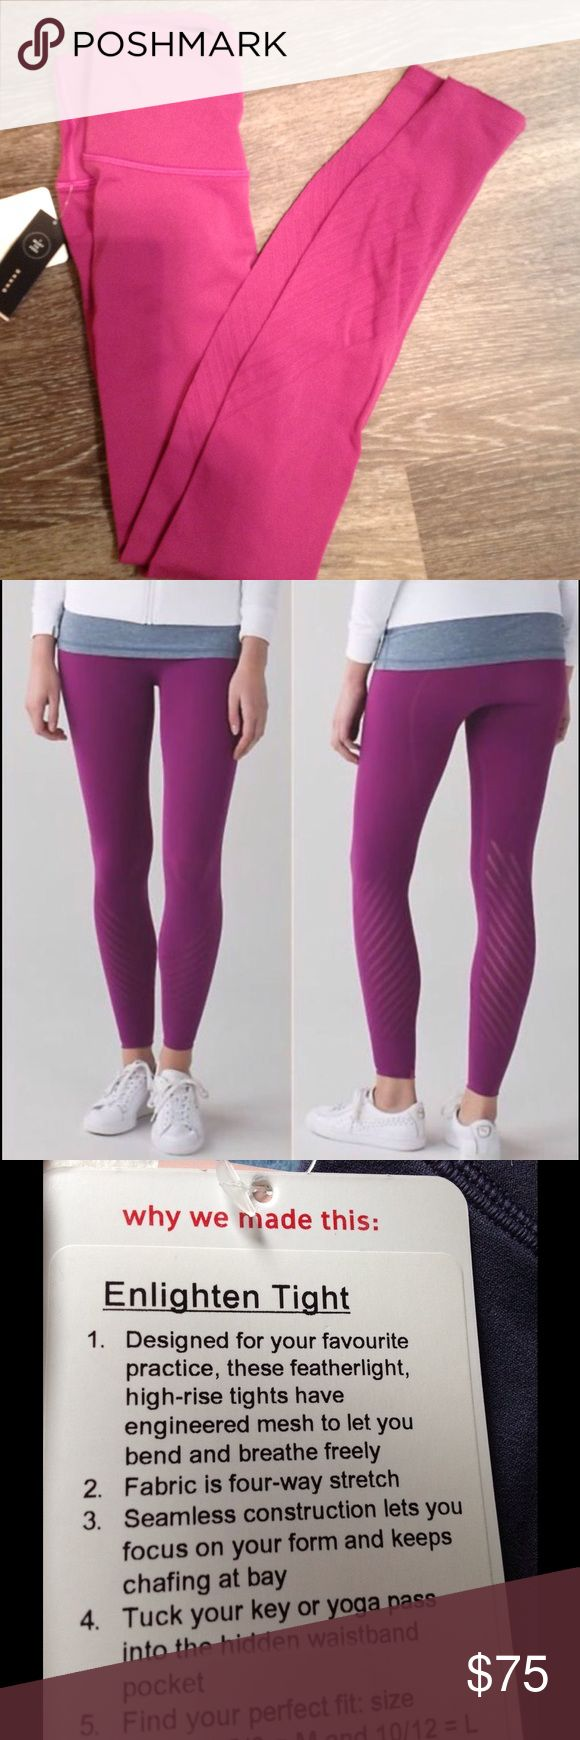 Lululemon Enlighten Tight sz S (2/4) ➡️ New with Tags color is regal plum  ➡️ Price is Firm ➡️ No Trades  ➡️ No rude comments ➡️ Please check out my other listings to bundle  ❤️ Thank you and happy shopping! lululemon athletica Pants Leggings